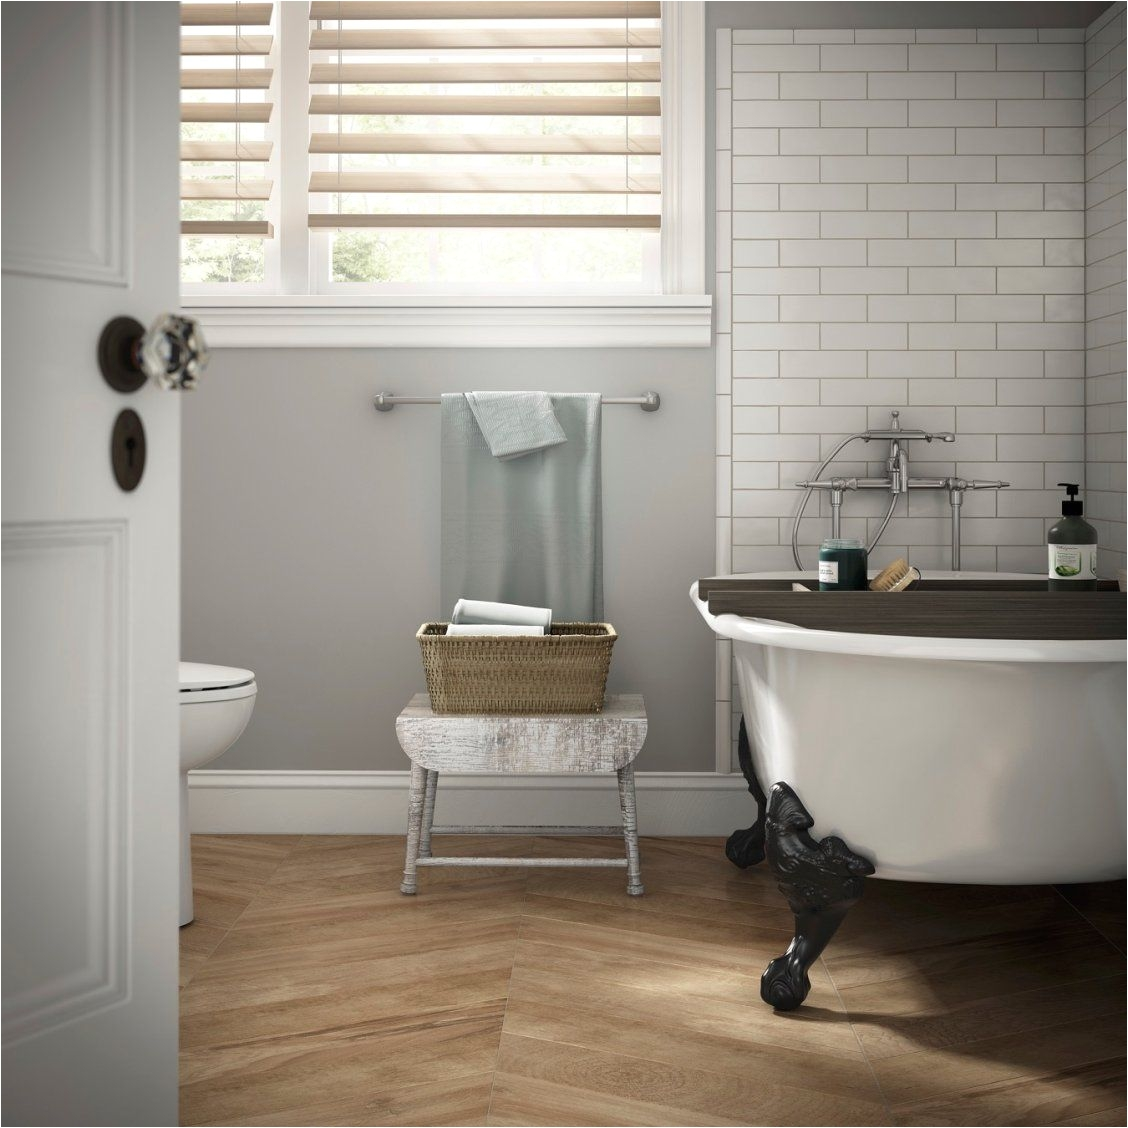 Create a spa like bathroom with soft gray walls a clawfoot tub striking herringbone floors and classic white subway tiles around the tub